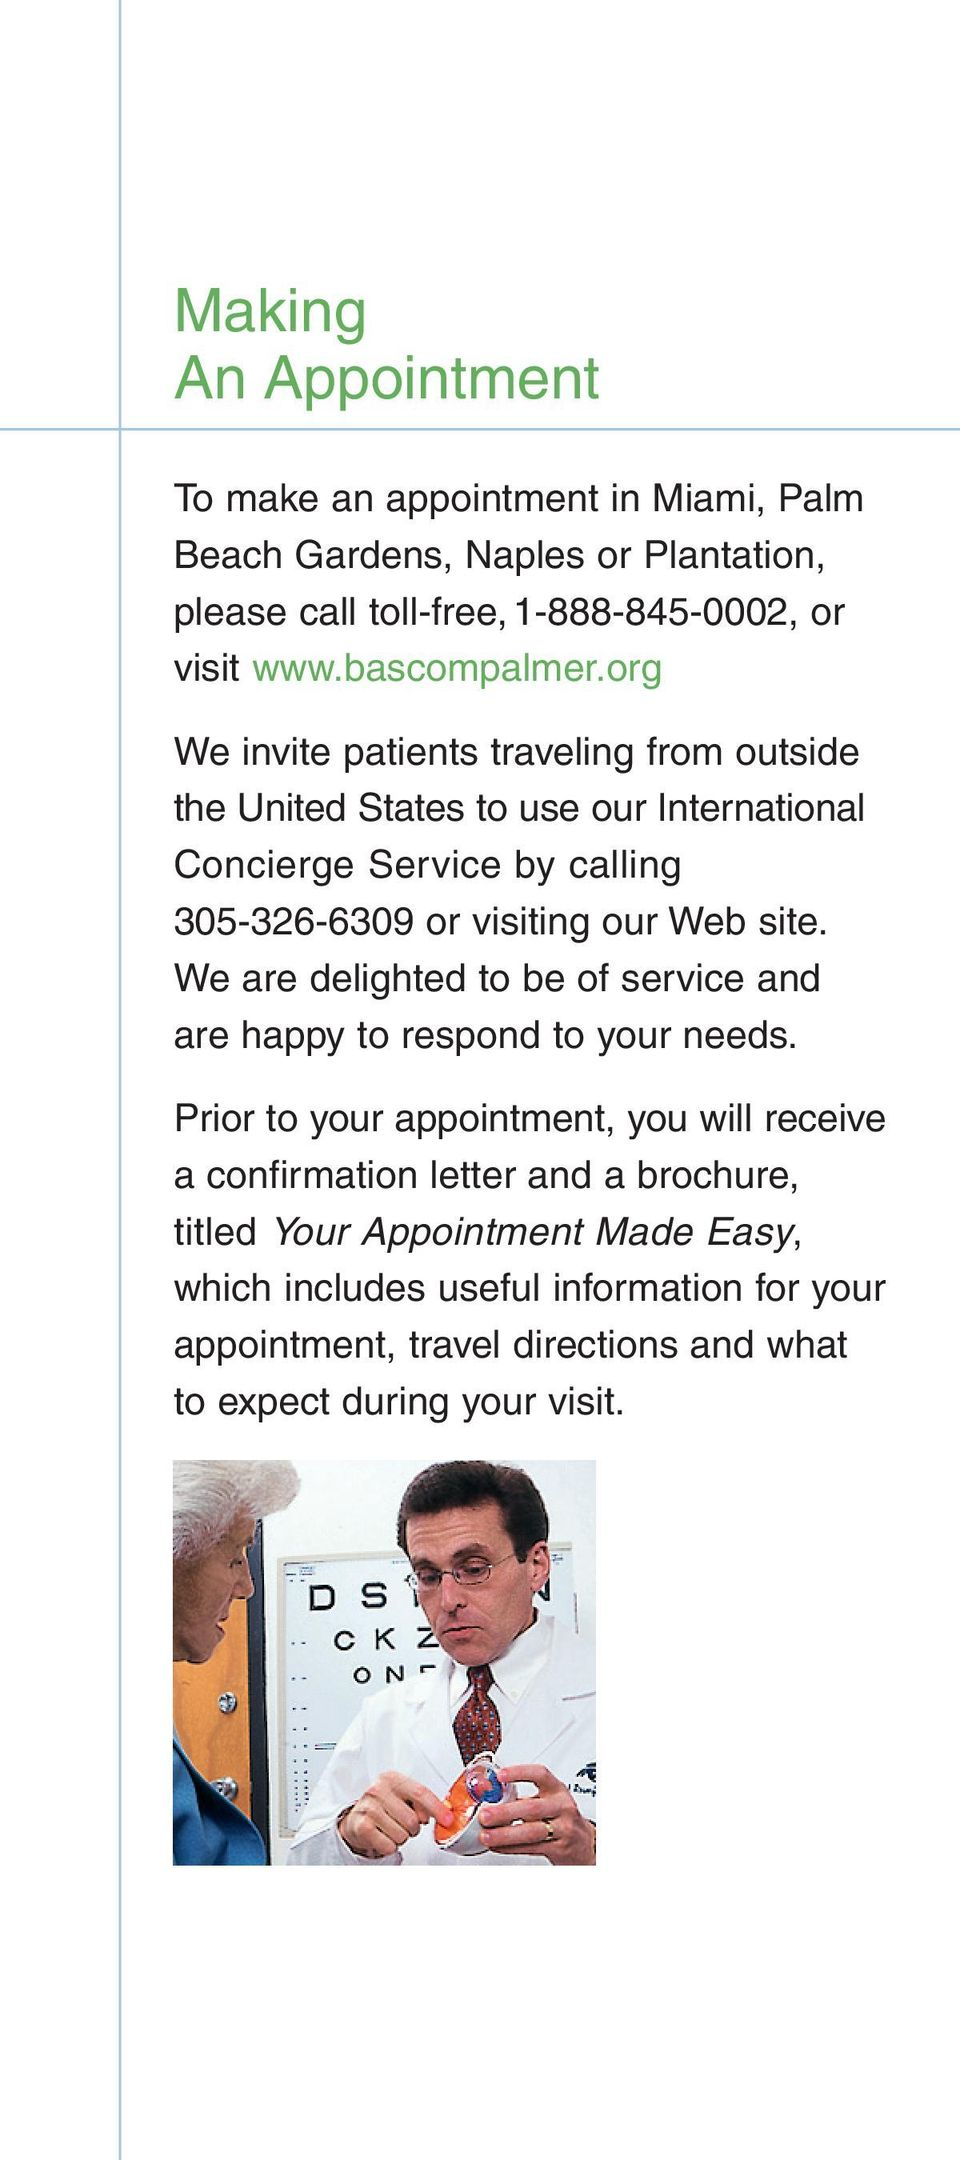 org We invite patients traveling from outside the United States to use our International Concierge Service by calling 305-326-6309 or visiting our Web site.